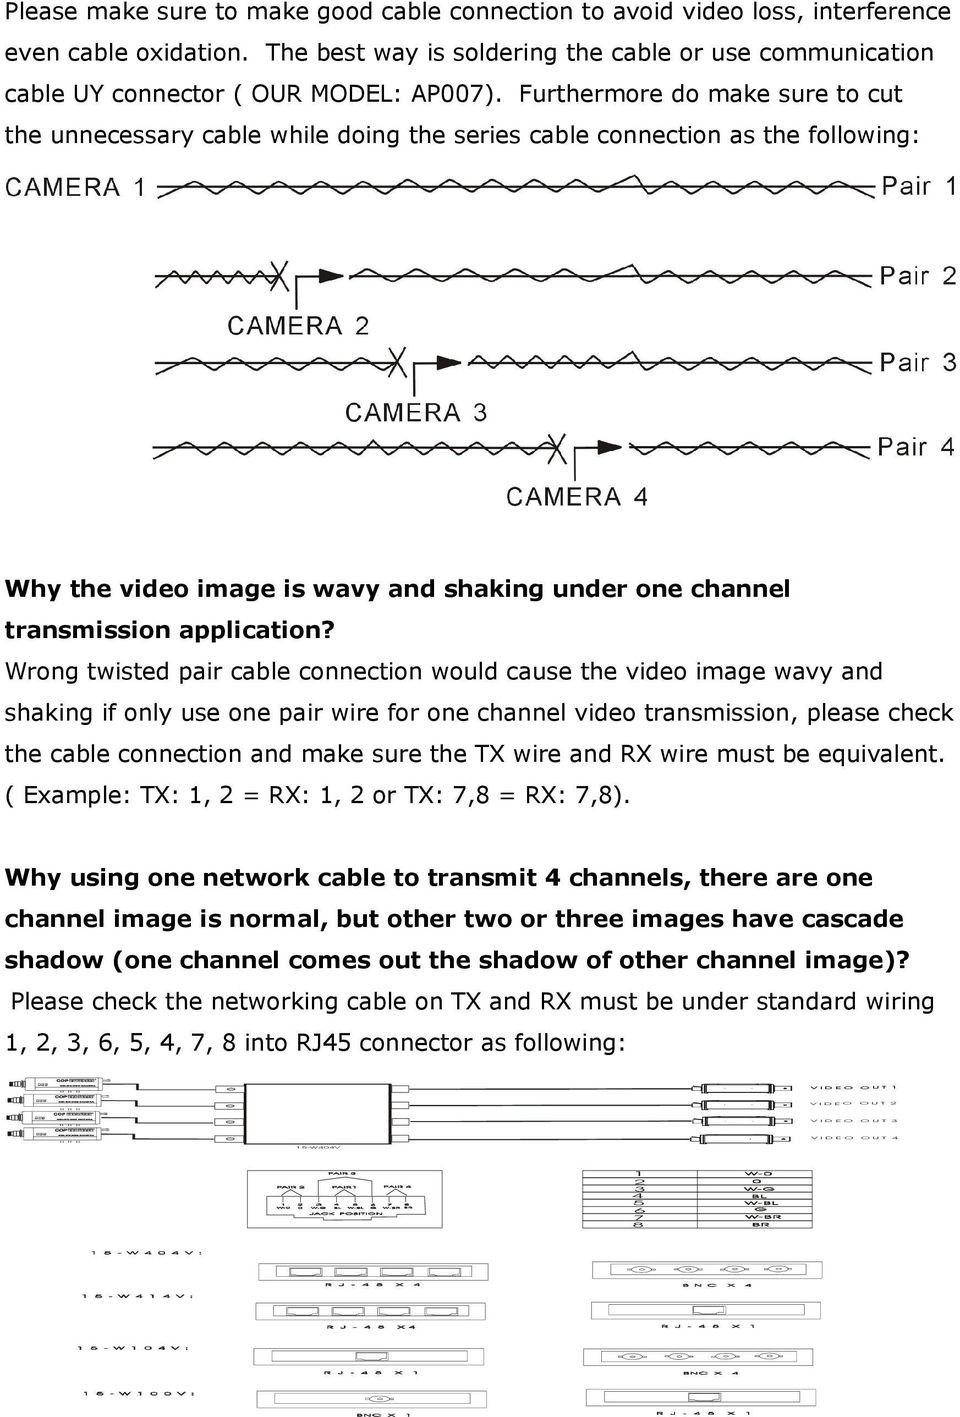 Frequently Asked Questions Pdf Wiring Using One Pair Of Powerline Adapters Pointtopoint Furthermore Do Make Sure To Cut The Unnecessary Cable While Doing Series Connection As